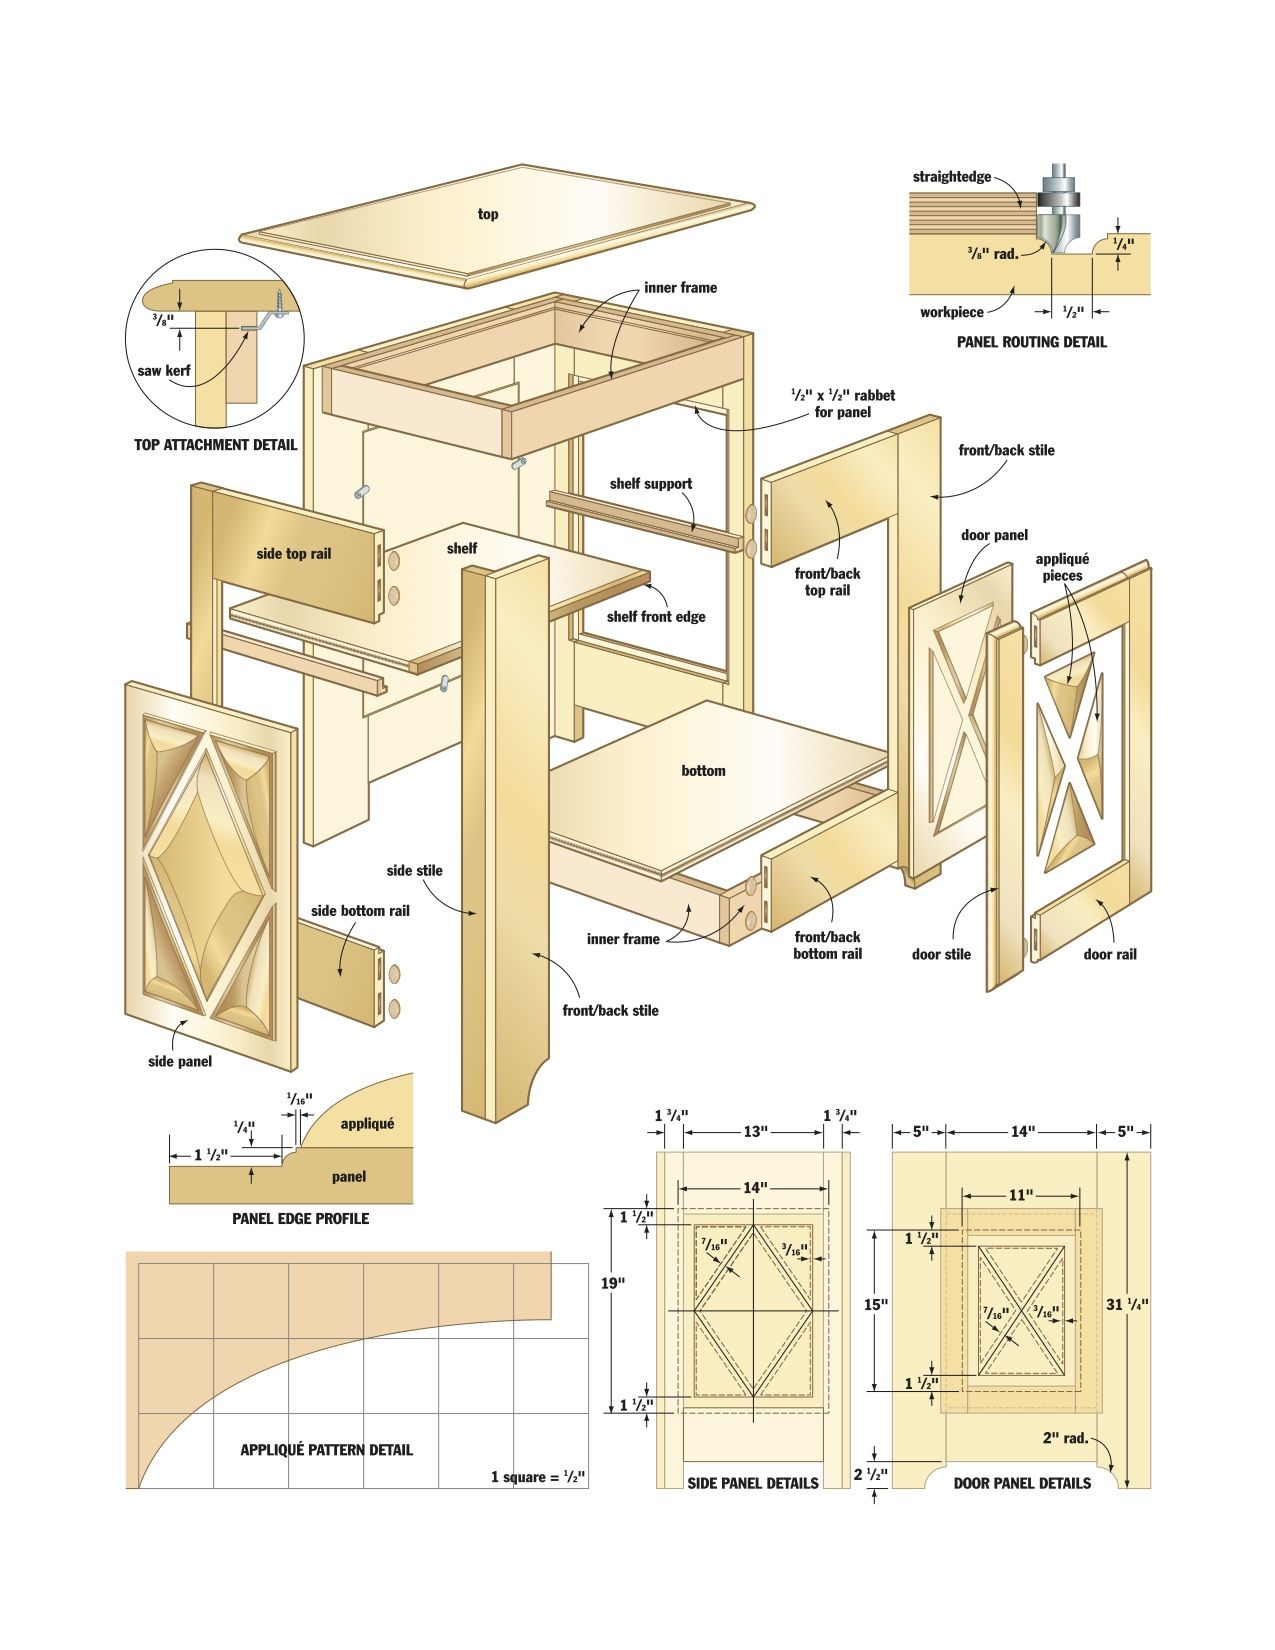 There are over 16000 woodworking plans that comes with